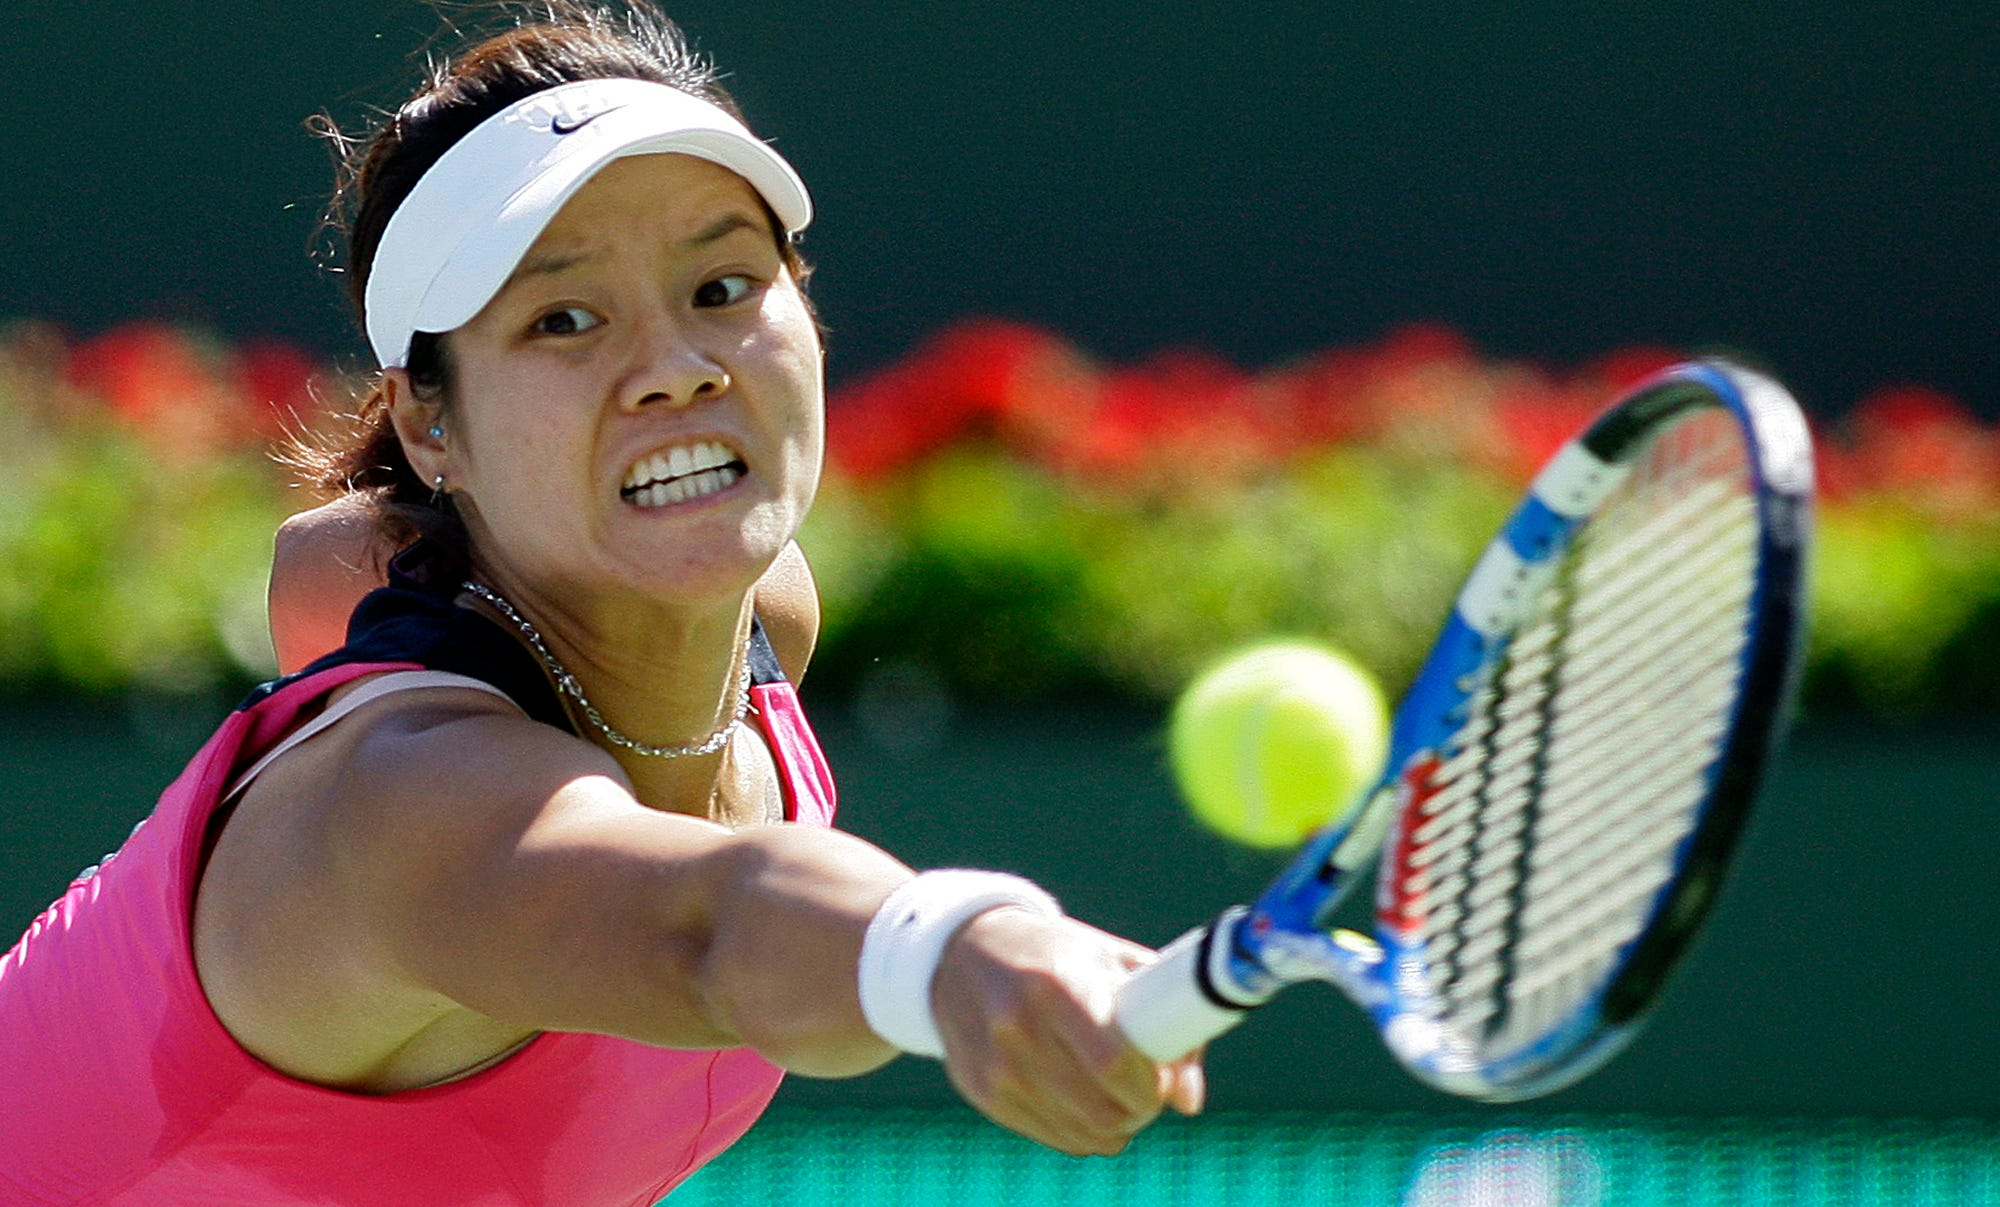 Li Na 2 Grand Slam singles titles